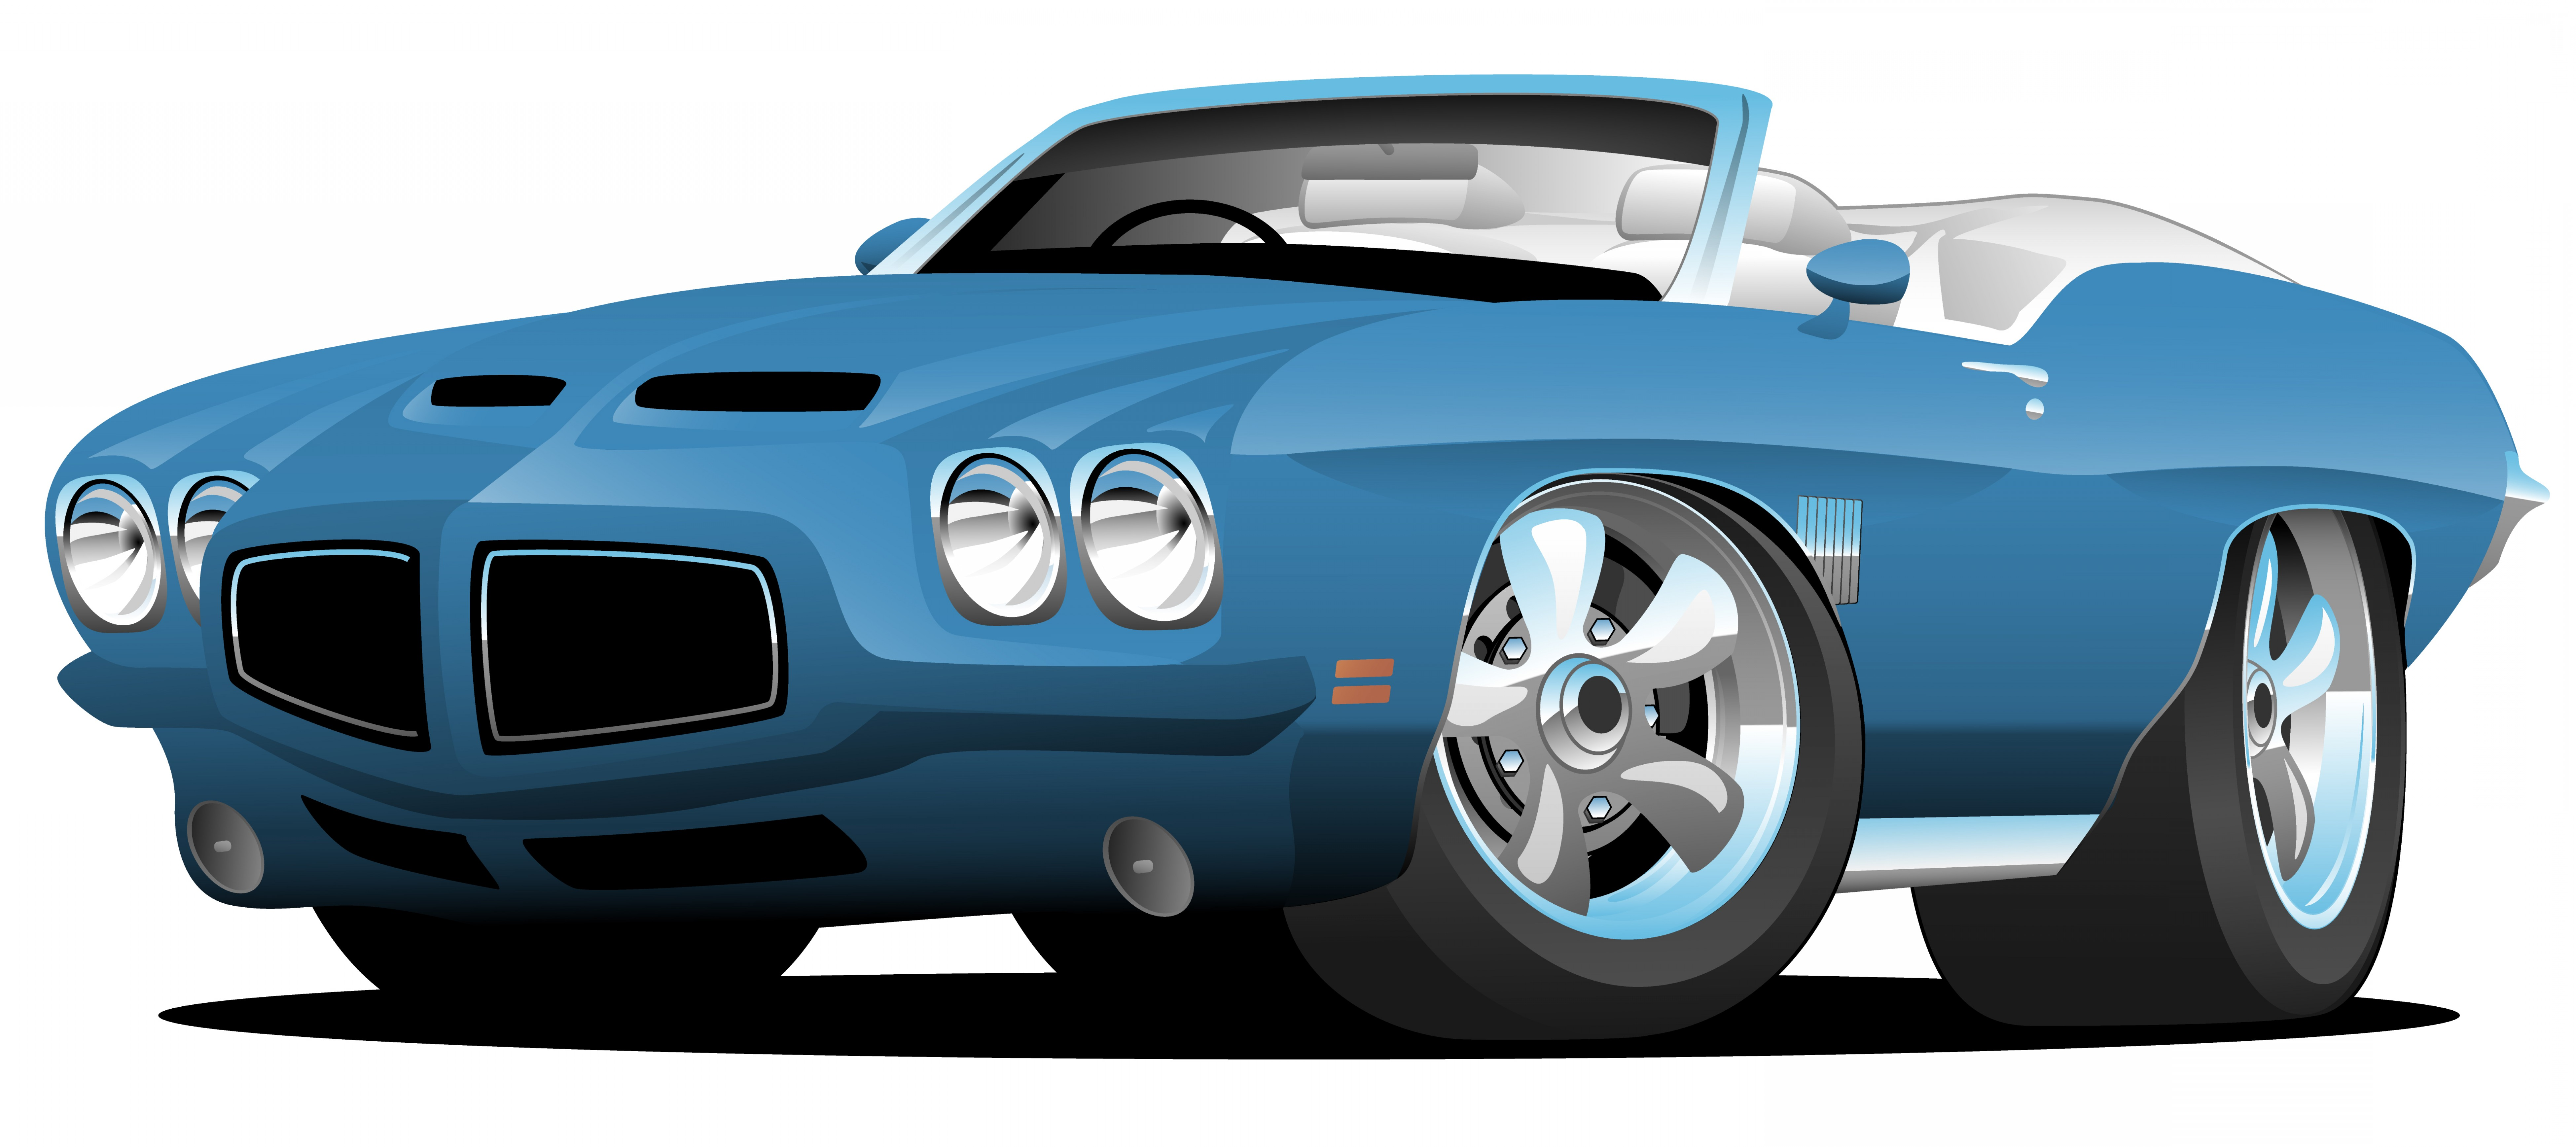 Custom Police Cars Vector: Classic Seventies Style American Convertible Muscle Car Cartoon Vector